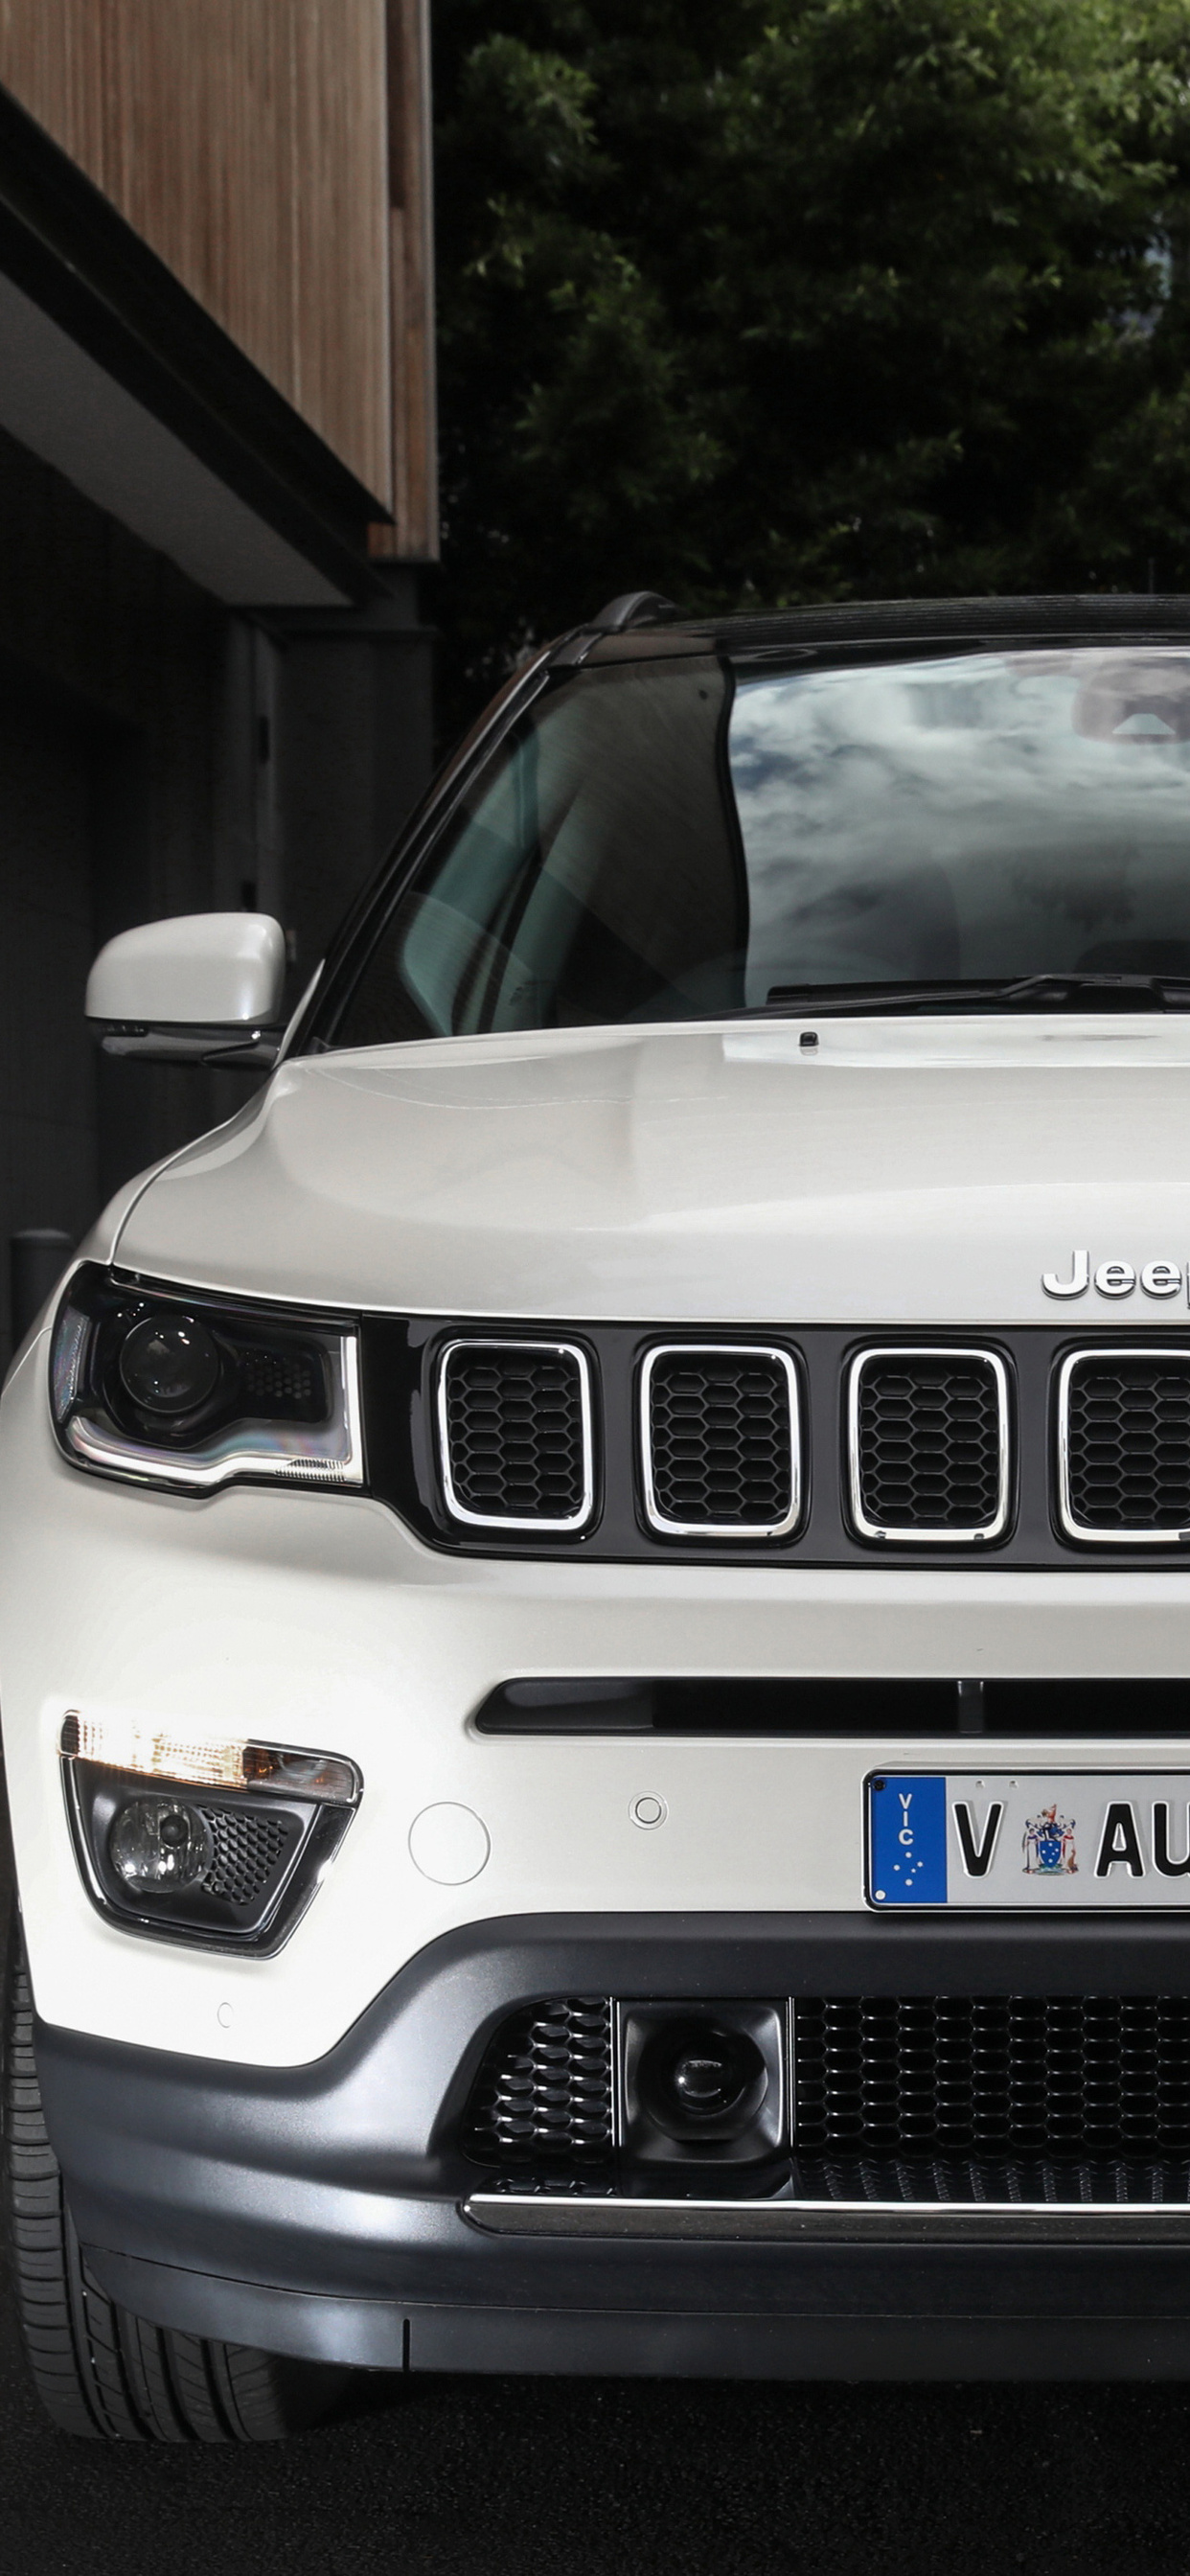 1242x2688 Jeep Compass Limited Au 4k Iphone Xs Max Hd 4k